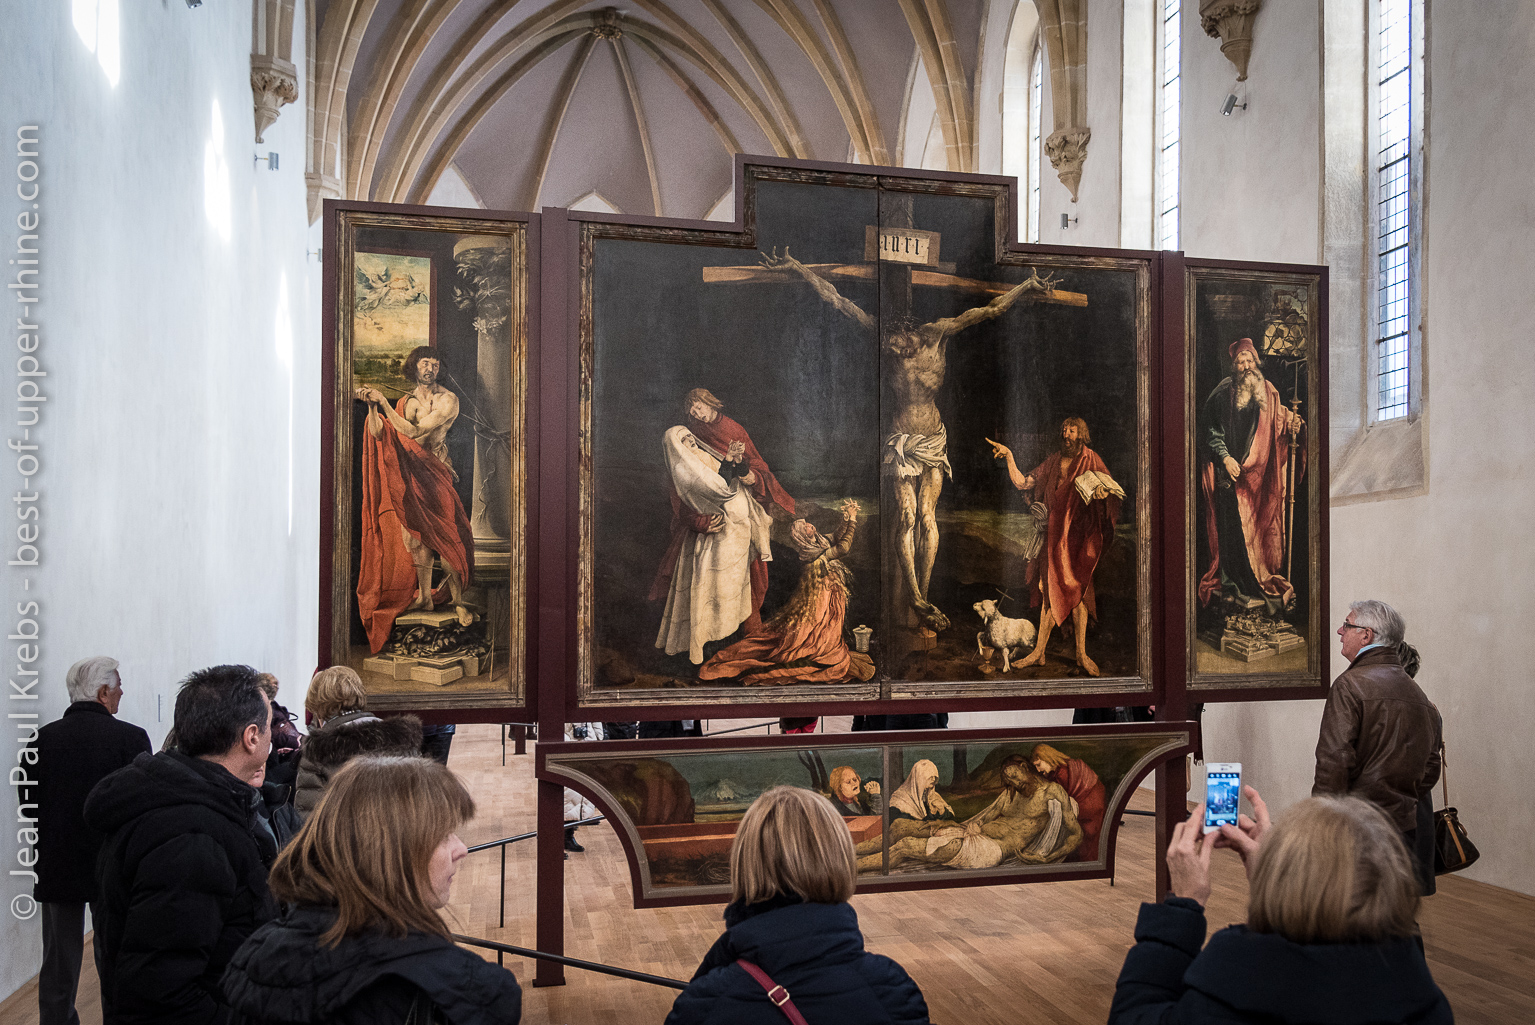 The famous Retable (altarpiece) of Issenheim painted in the 16th Century and presented at the Unterlinden museum.